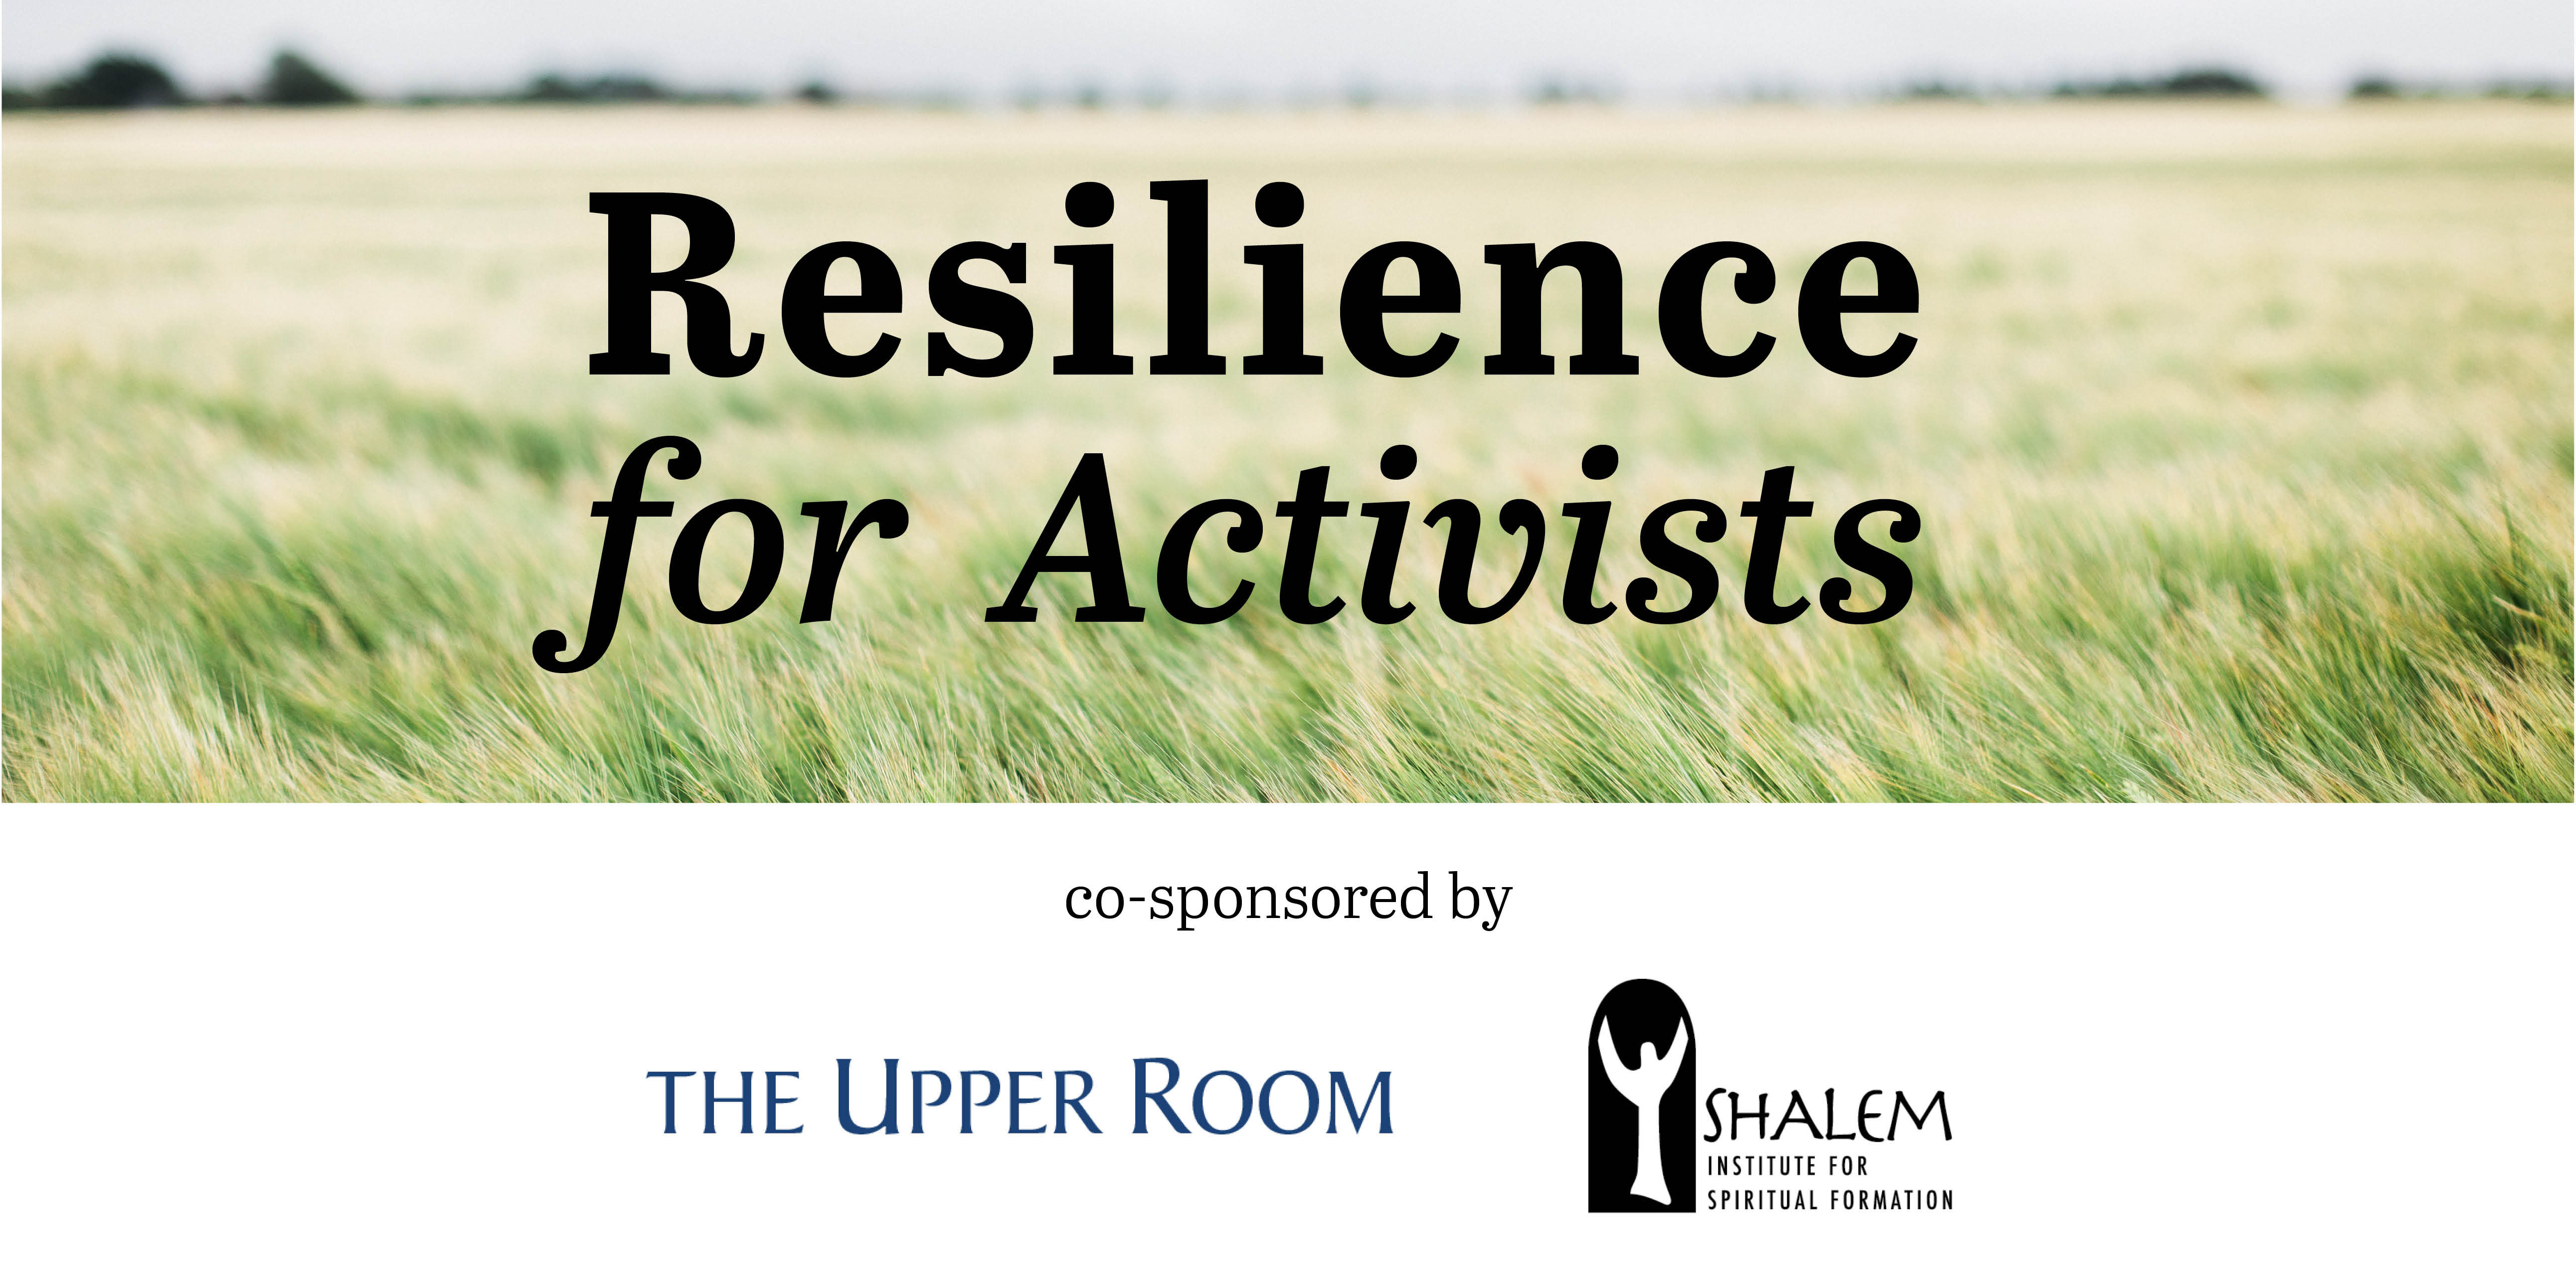 Resilience for Activists